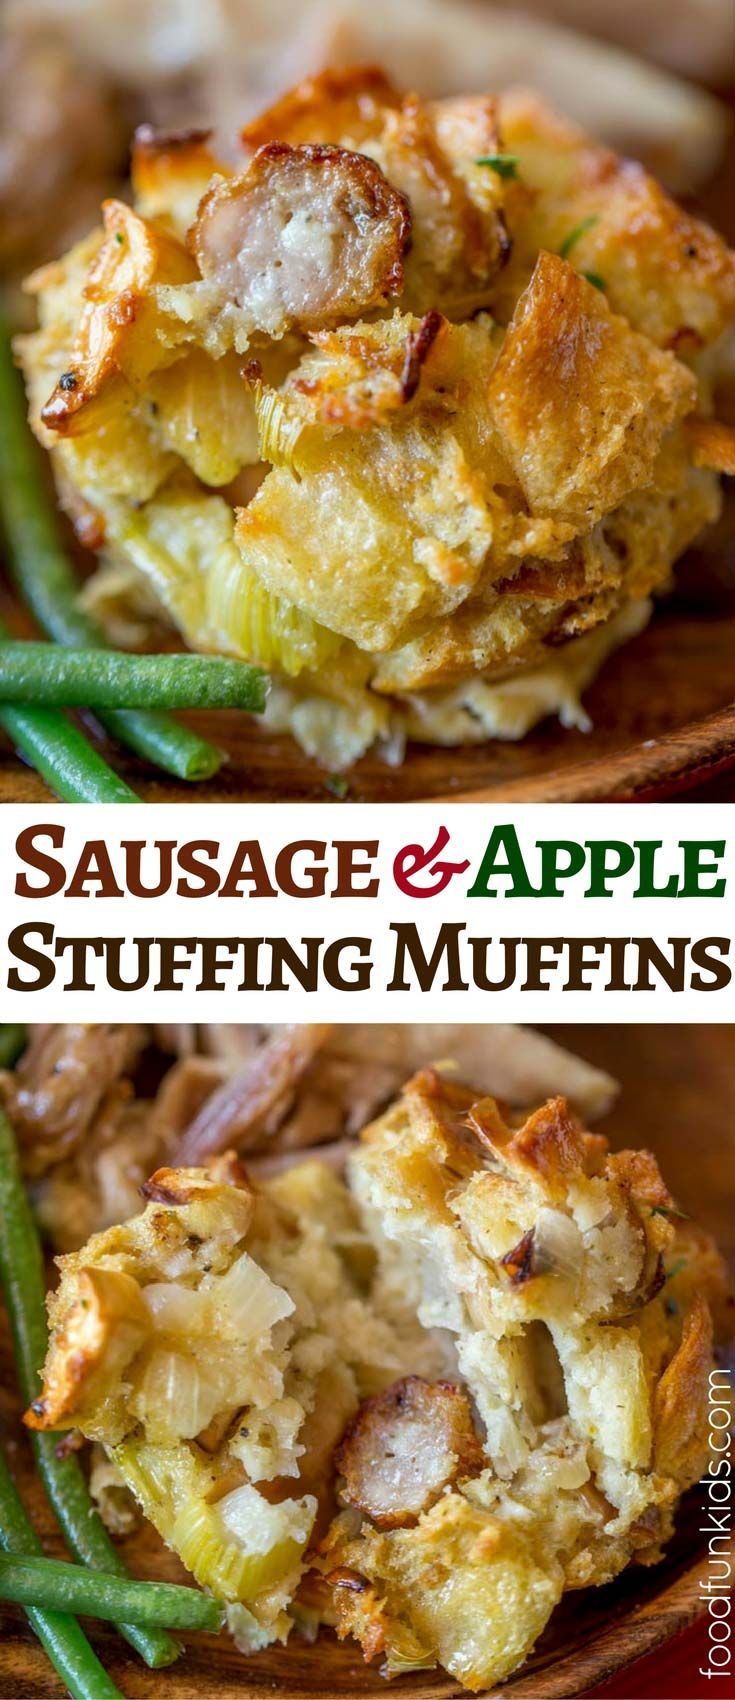 Easy Stuffing Muffins are a perfect holiday side dish your kids will love in the perfect portion size, filled with sausage and apple. via @foodfunkids